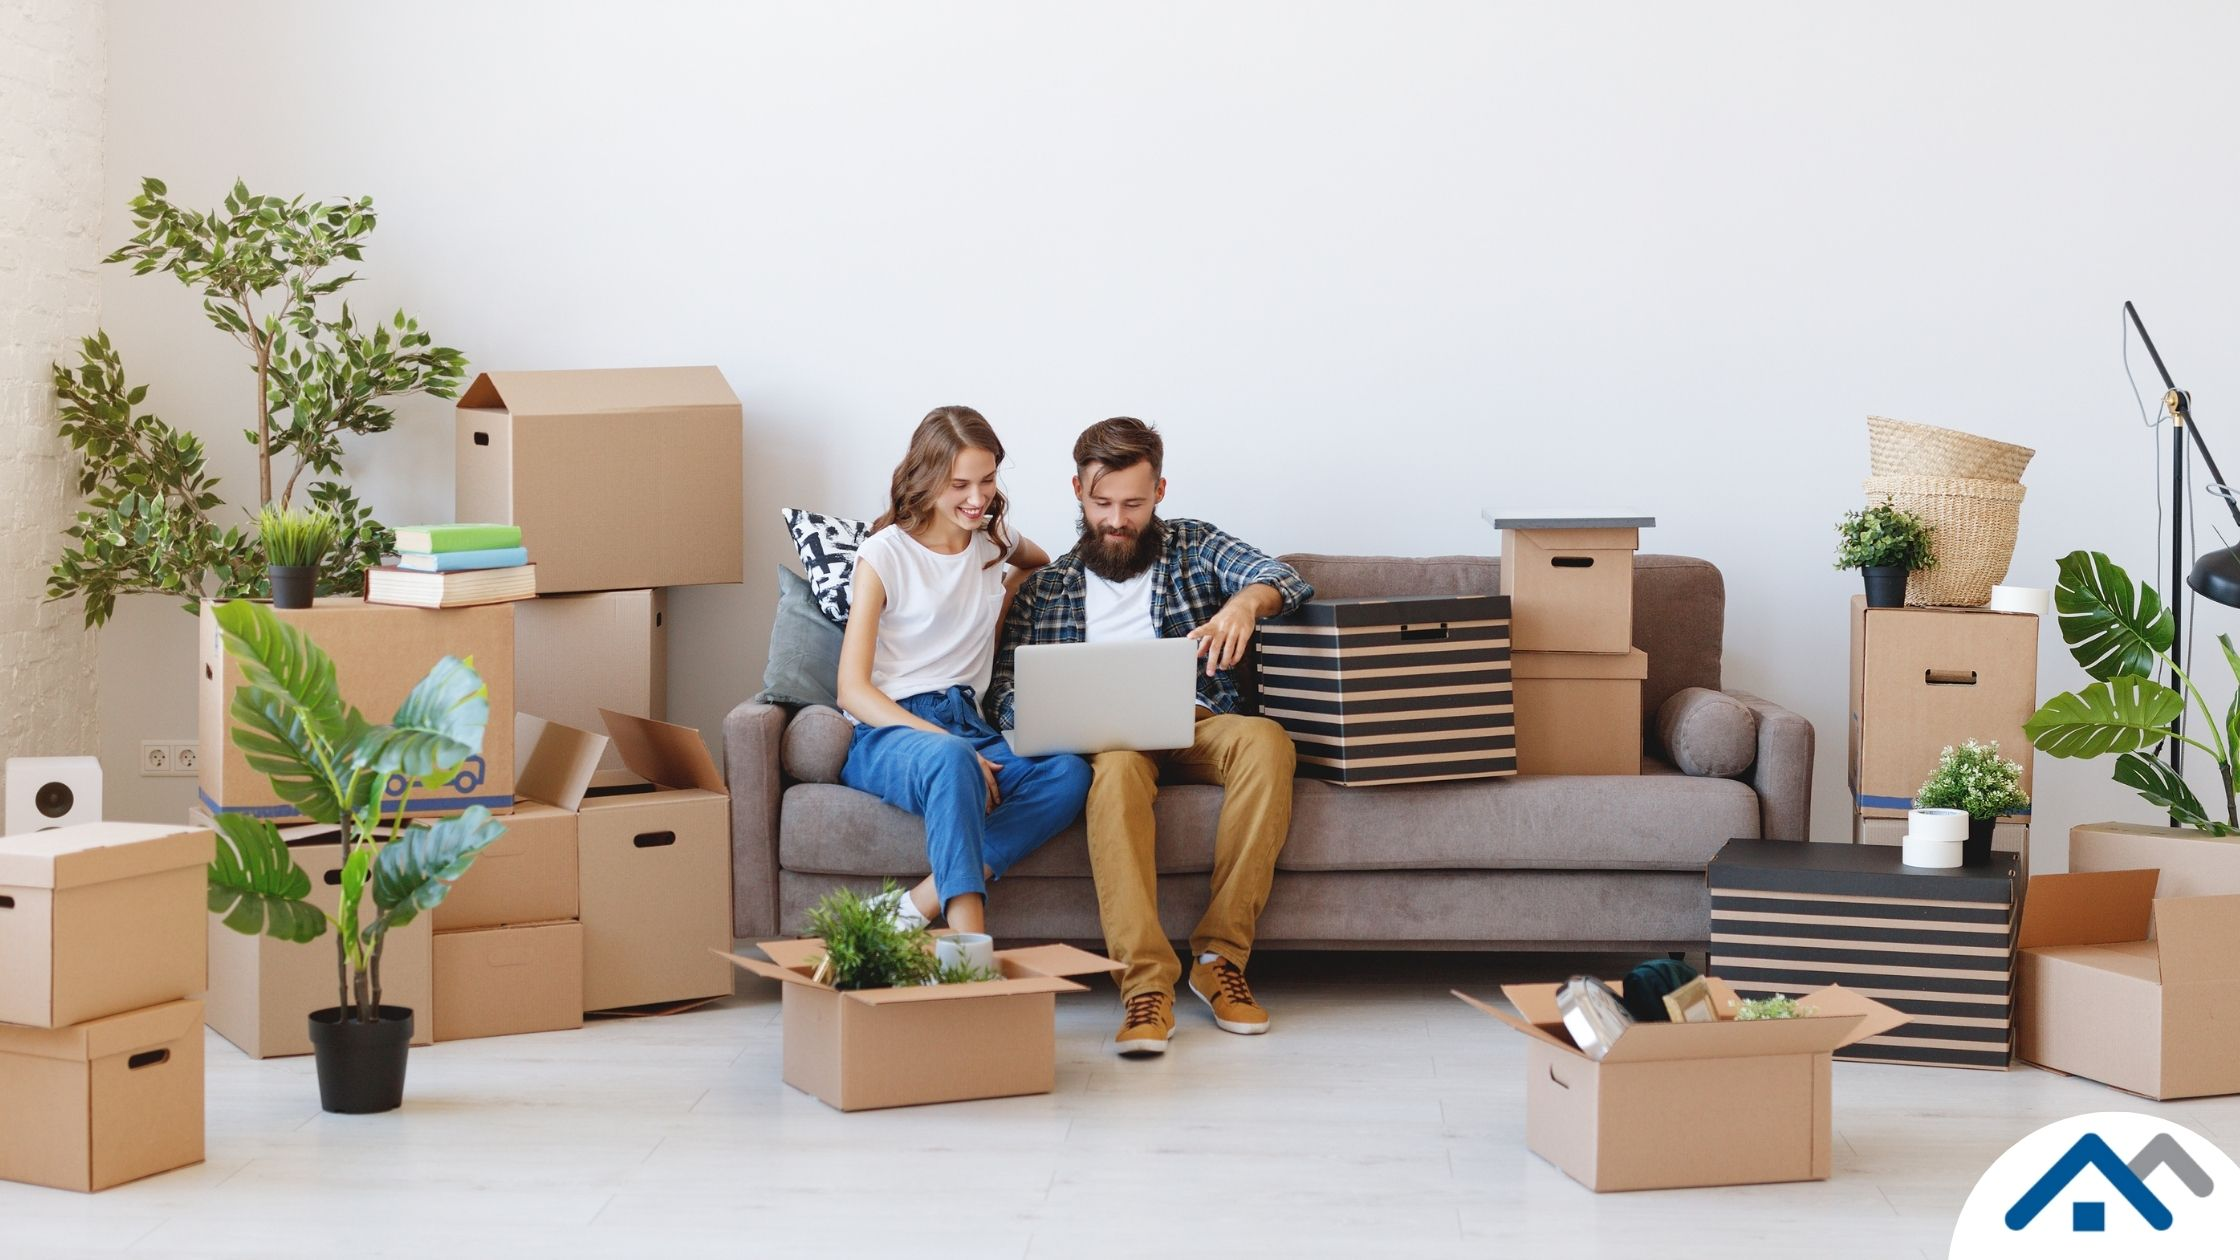 How to make moving simple